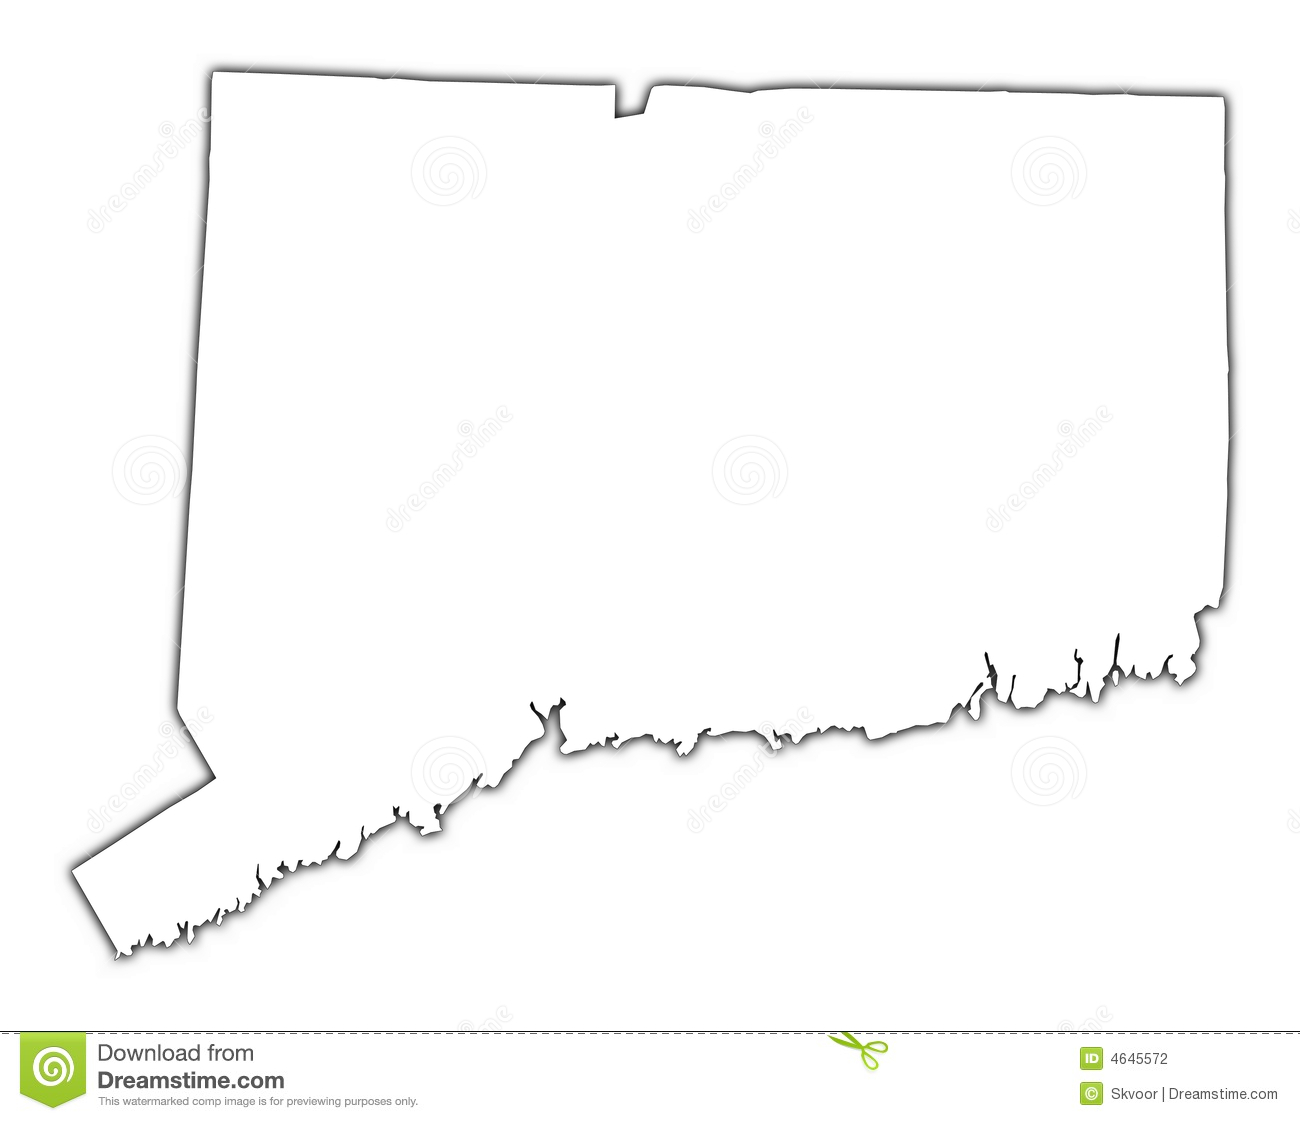 Connecticut clipart #11, Download drawings